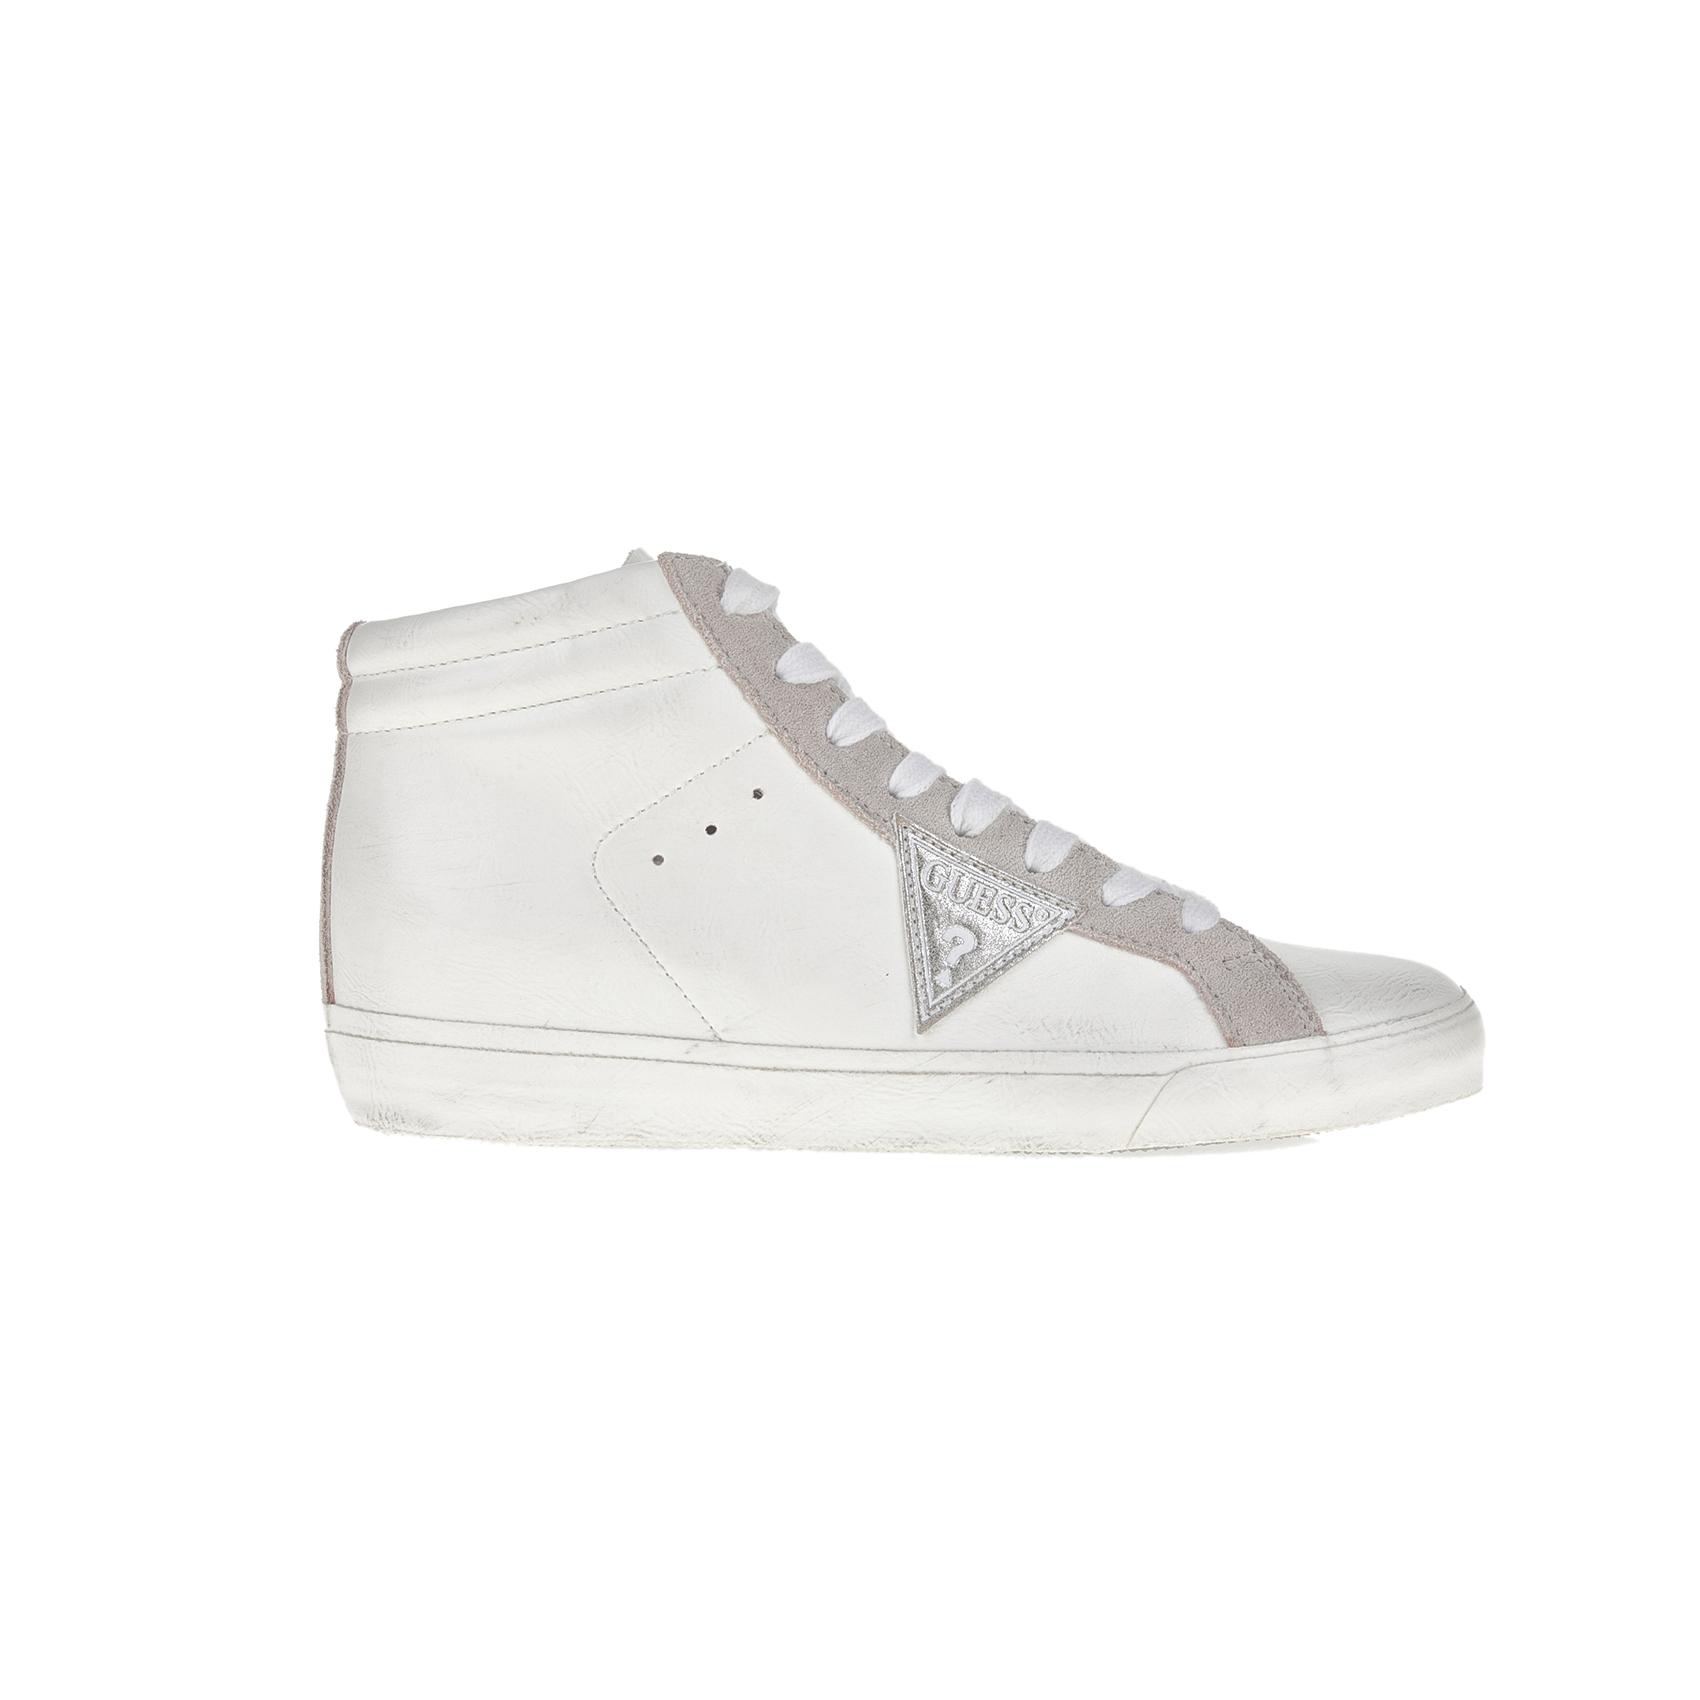 GUESS – Γυναικεία sneakers GUESS λευκά